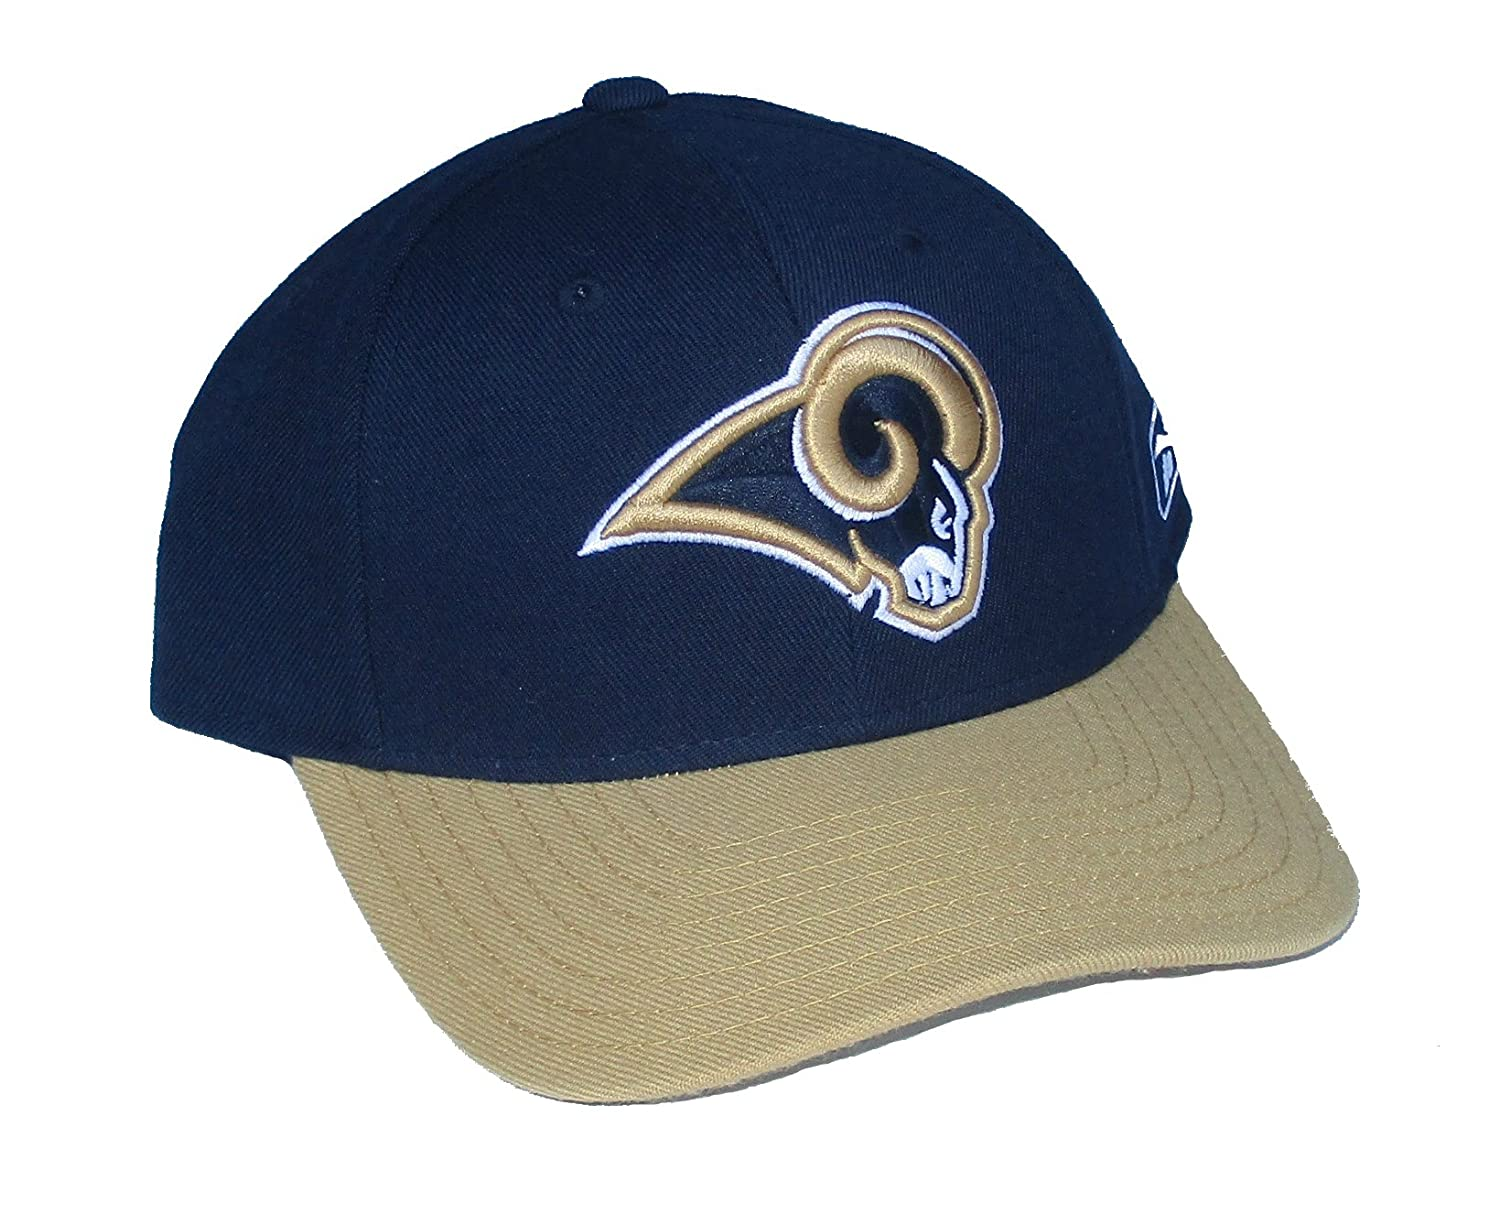 Amazon.com : Los Angeles Rams Fitted Size 7 1/4 NFL Authentic Players On-Field Sideline 2-Tone Hat Cap - Navy Blue & Gold : Sports & Outdoors